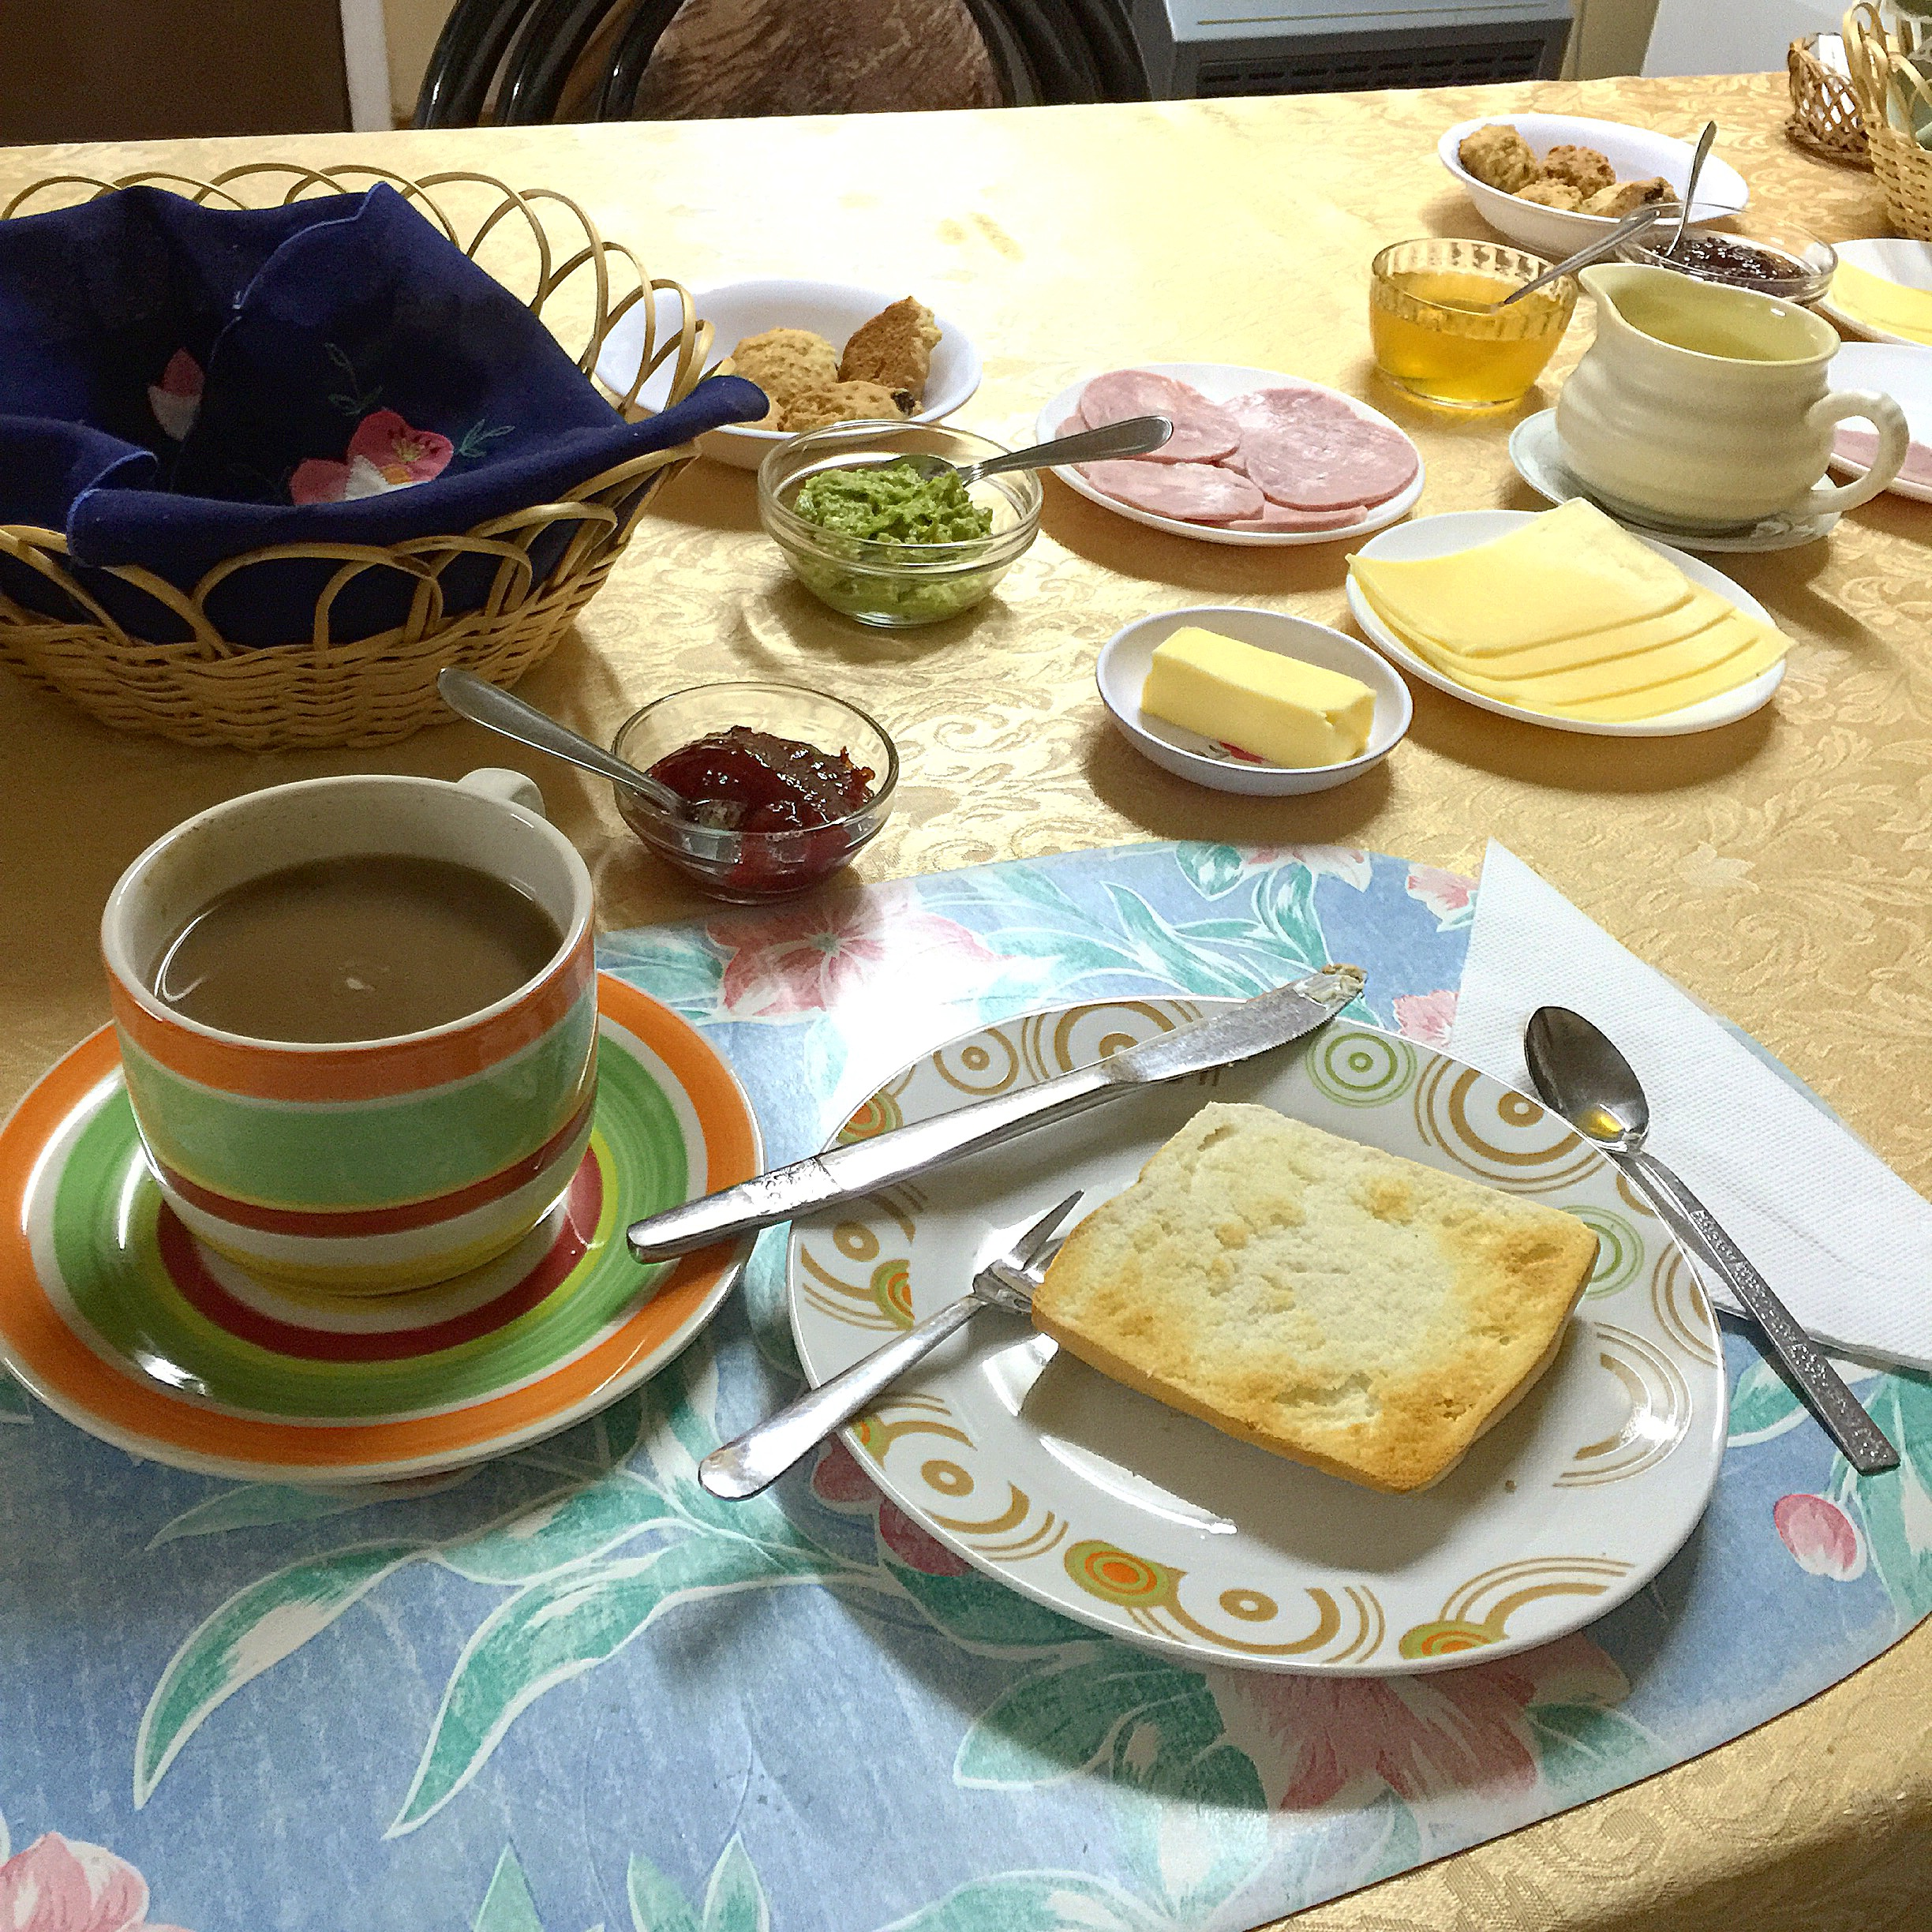 You don't have to choose between sweet or savory breakfast when it's all on the table! Here you see a typical Chilean desayuno to get your long day of fishing started off right!